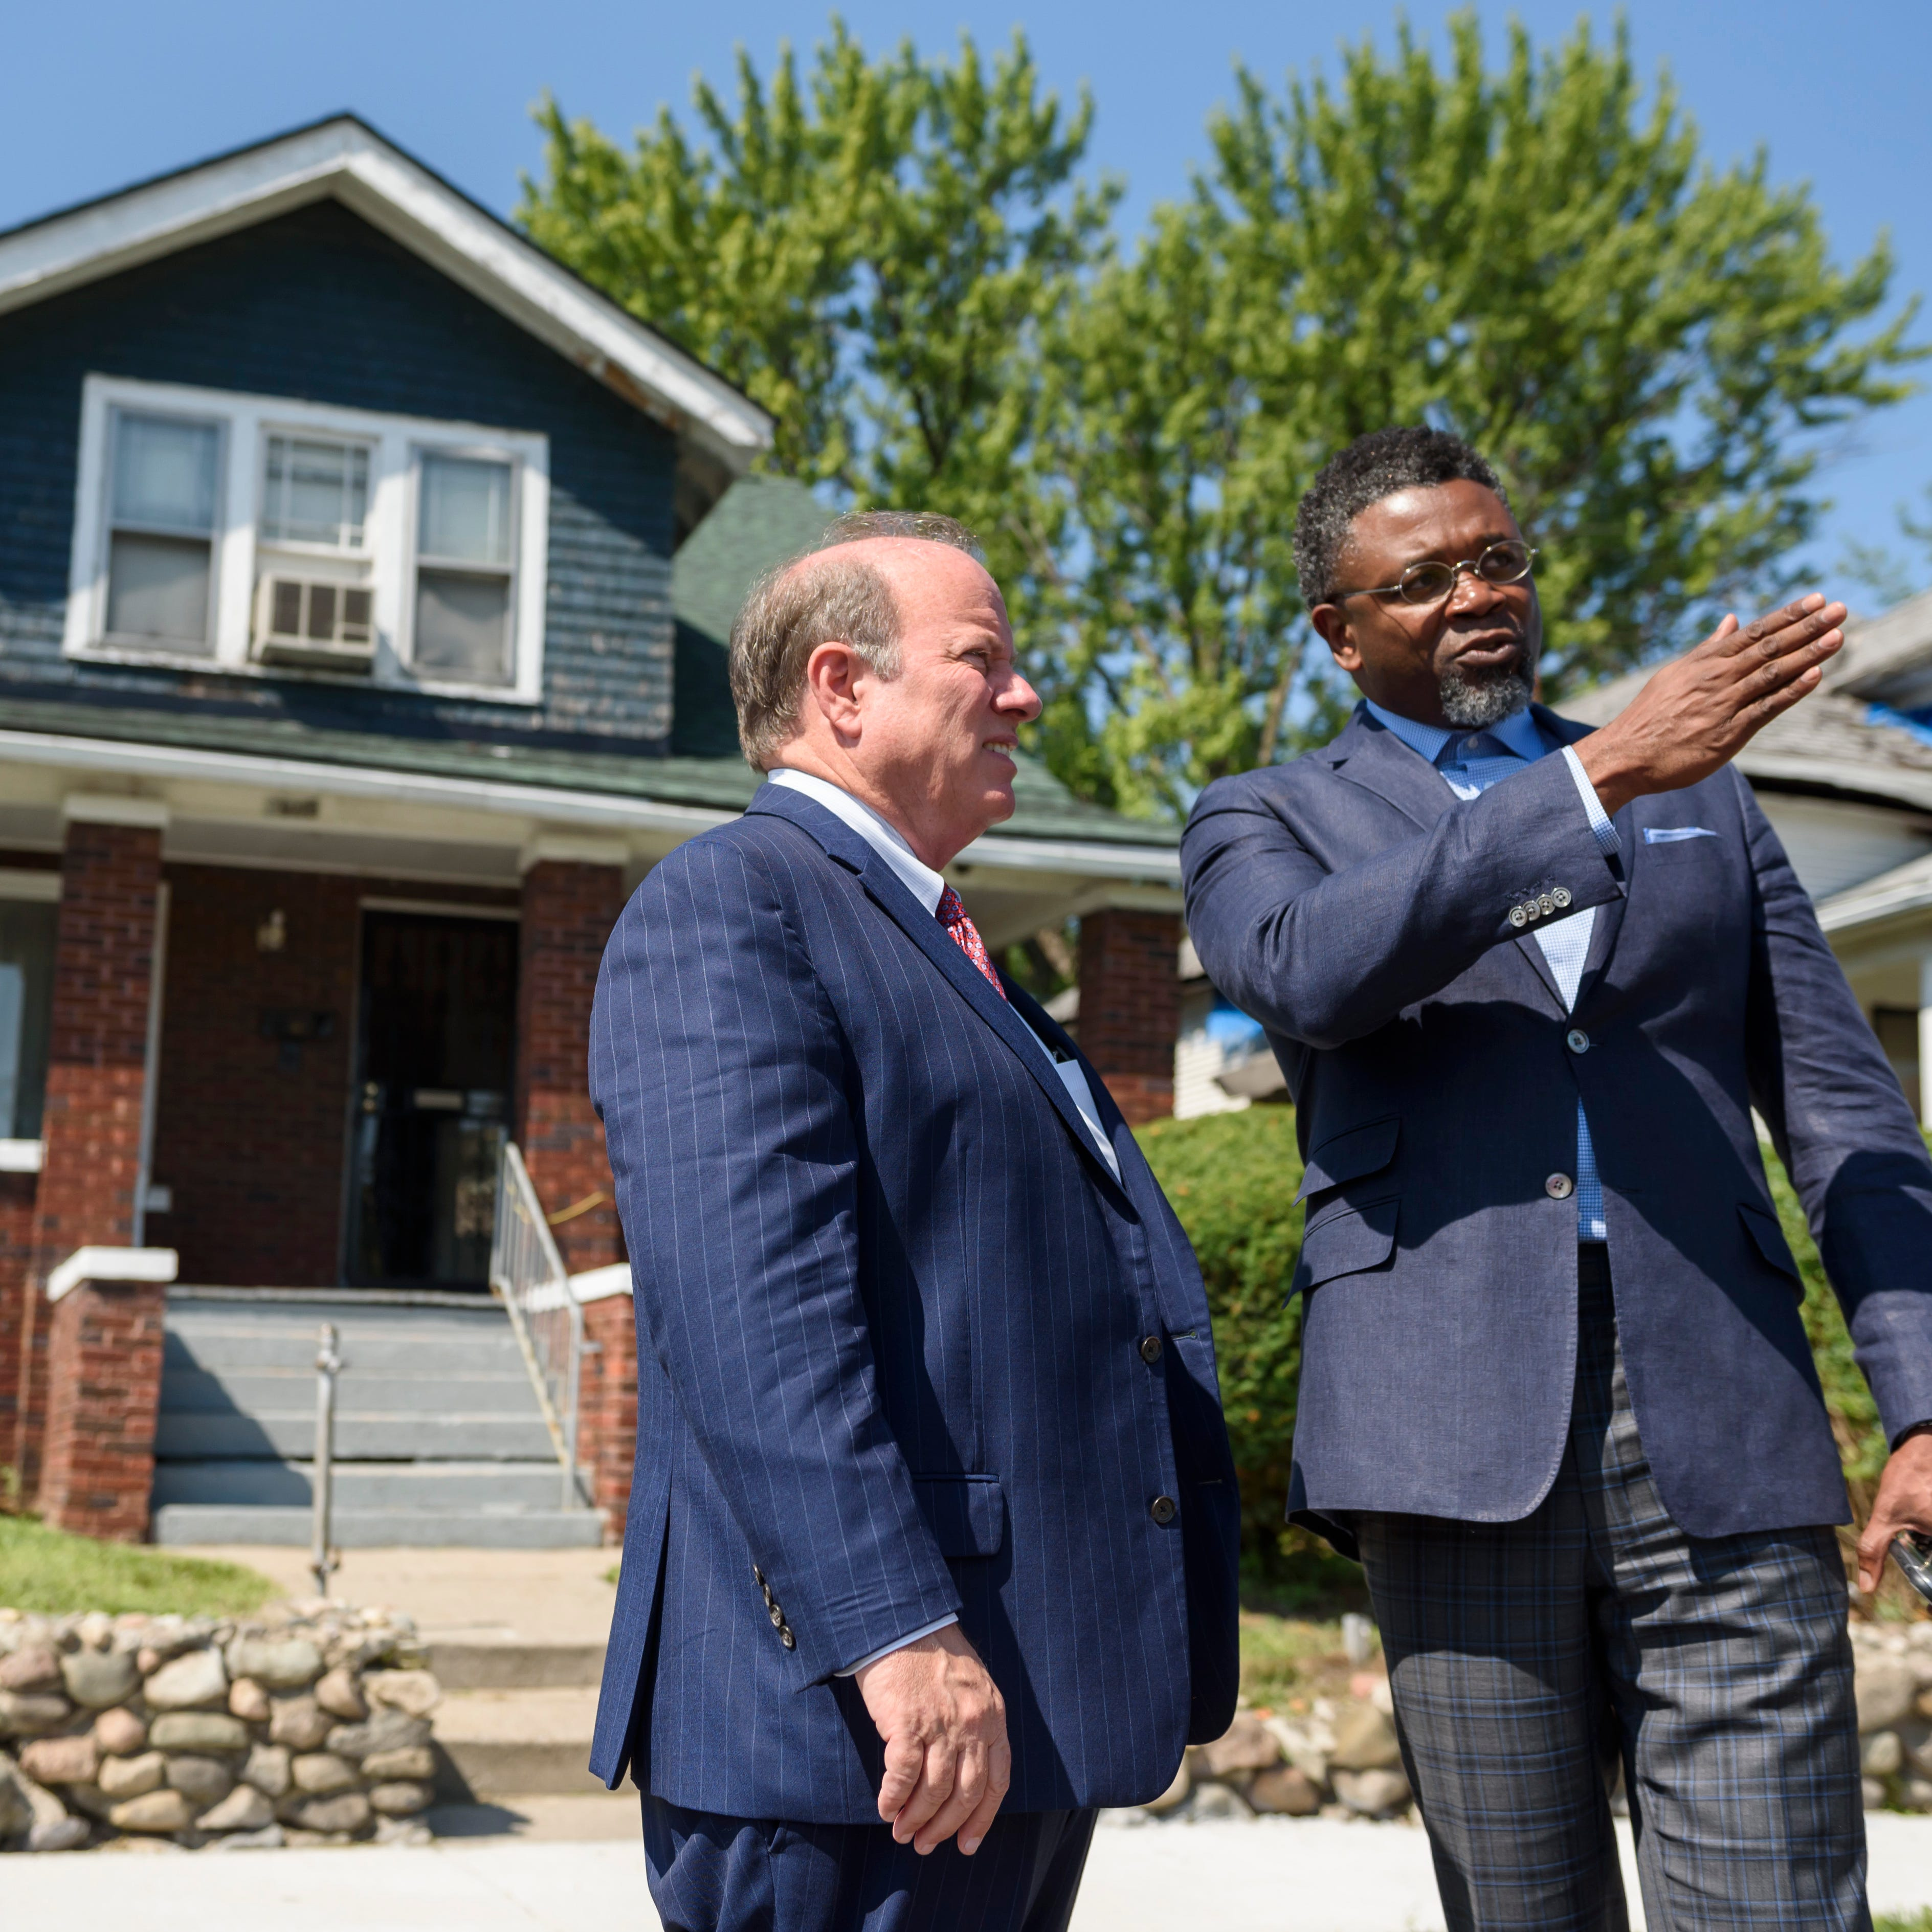 Detroit awarded $500k to preserve, expand Ossian Sweet historic district